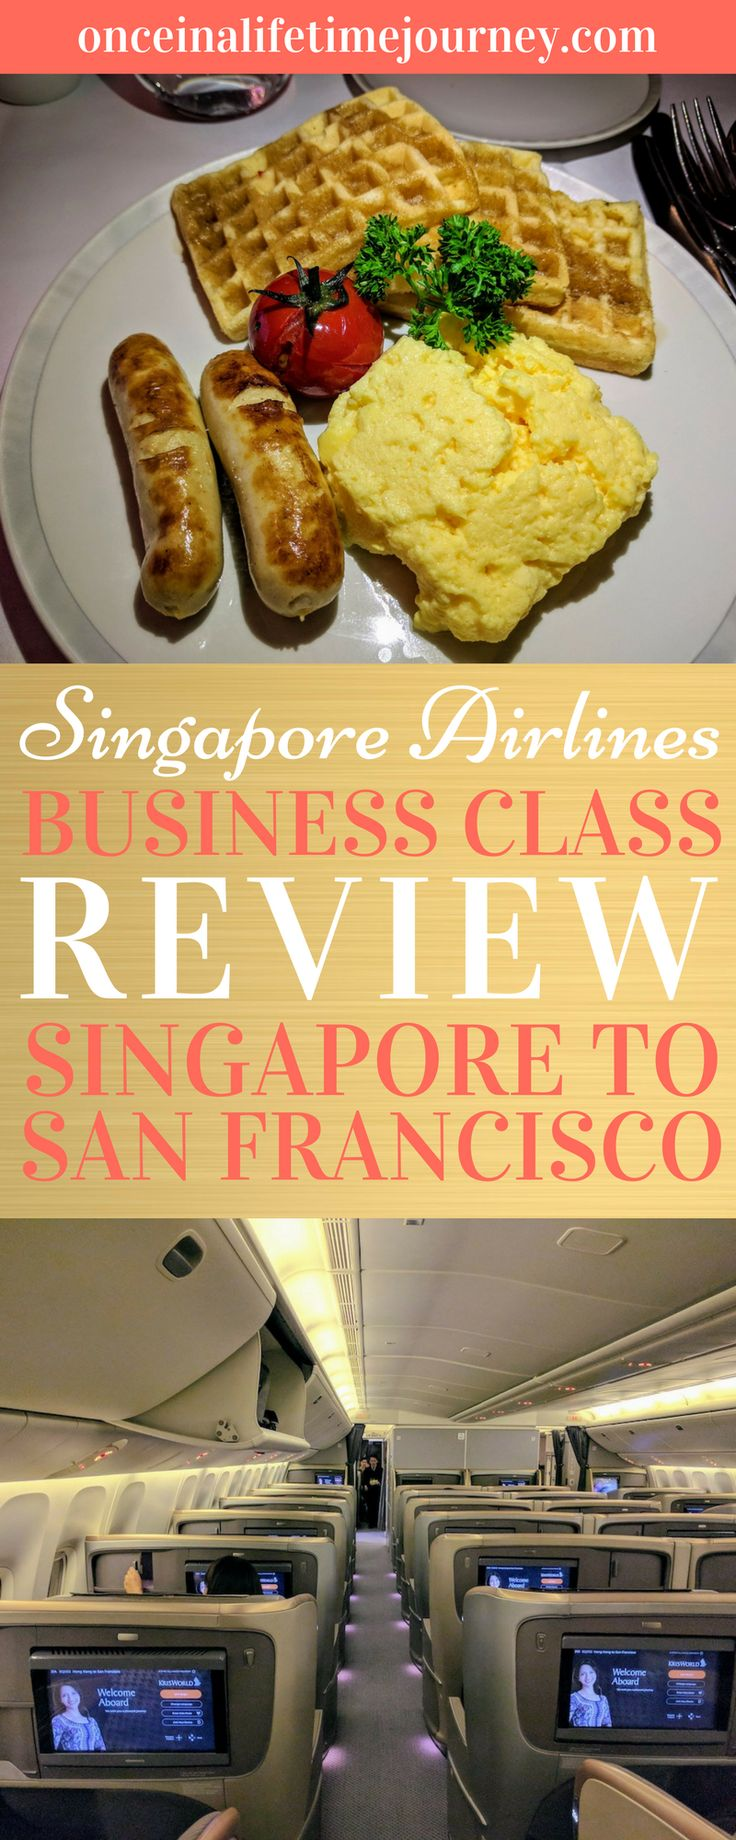 Ever wondered what it is like to fly Singapore Airlines Business Class between Singapore and San Francisco via Hong Kong? Is it worth the cost? Click through to read my detailed review of Business Class on Singapore Airlines Singapore to San Francisco route. | Once in a  Lifetime Journey #singapore #singaporeairlines #businessclass #flightreview #traveltips